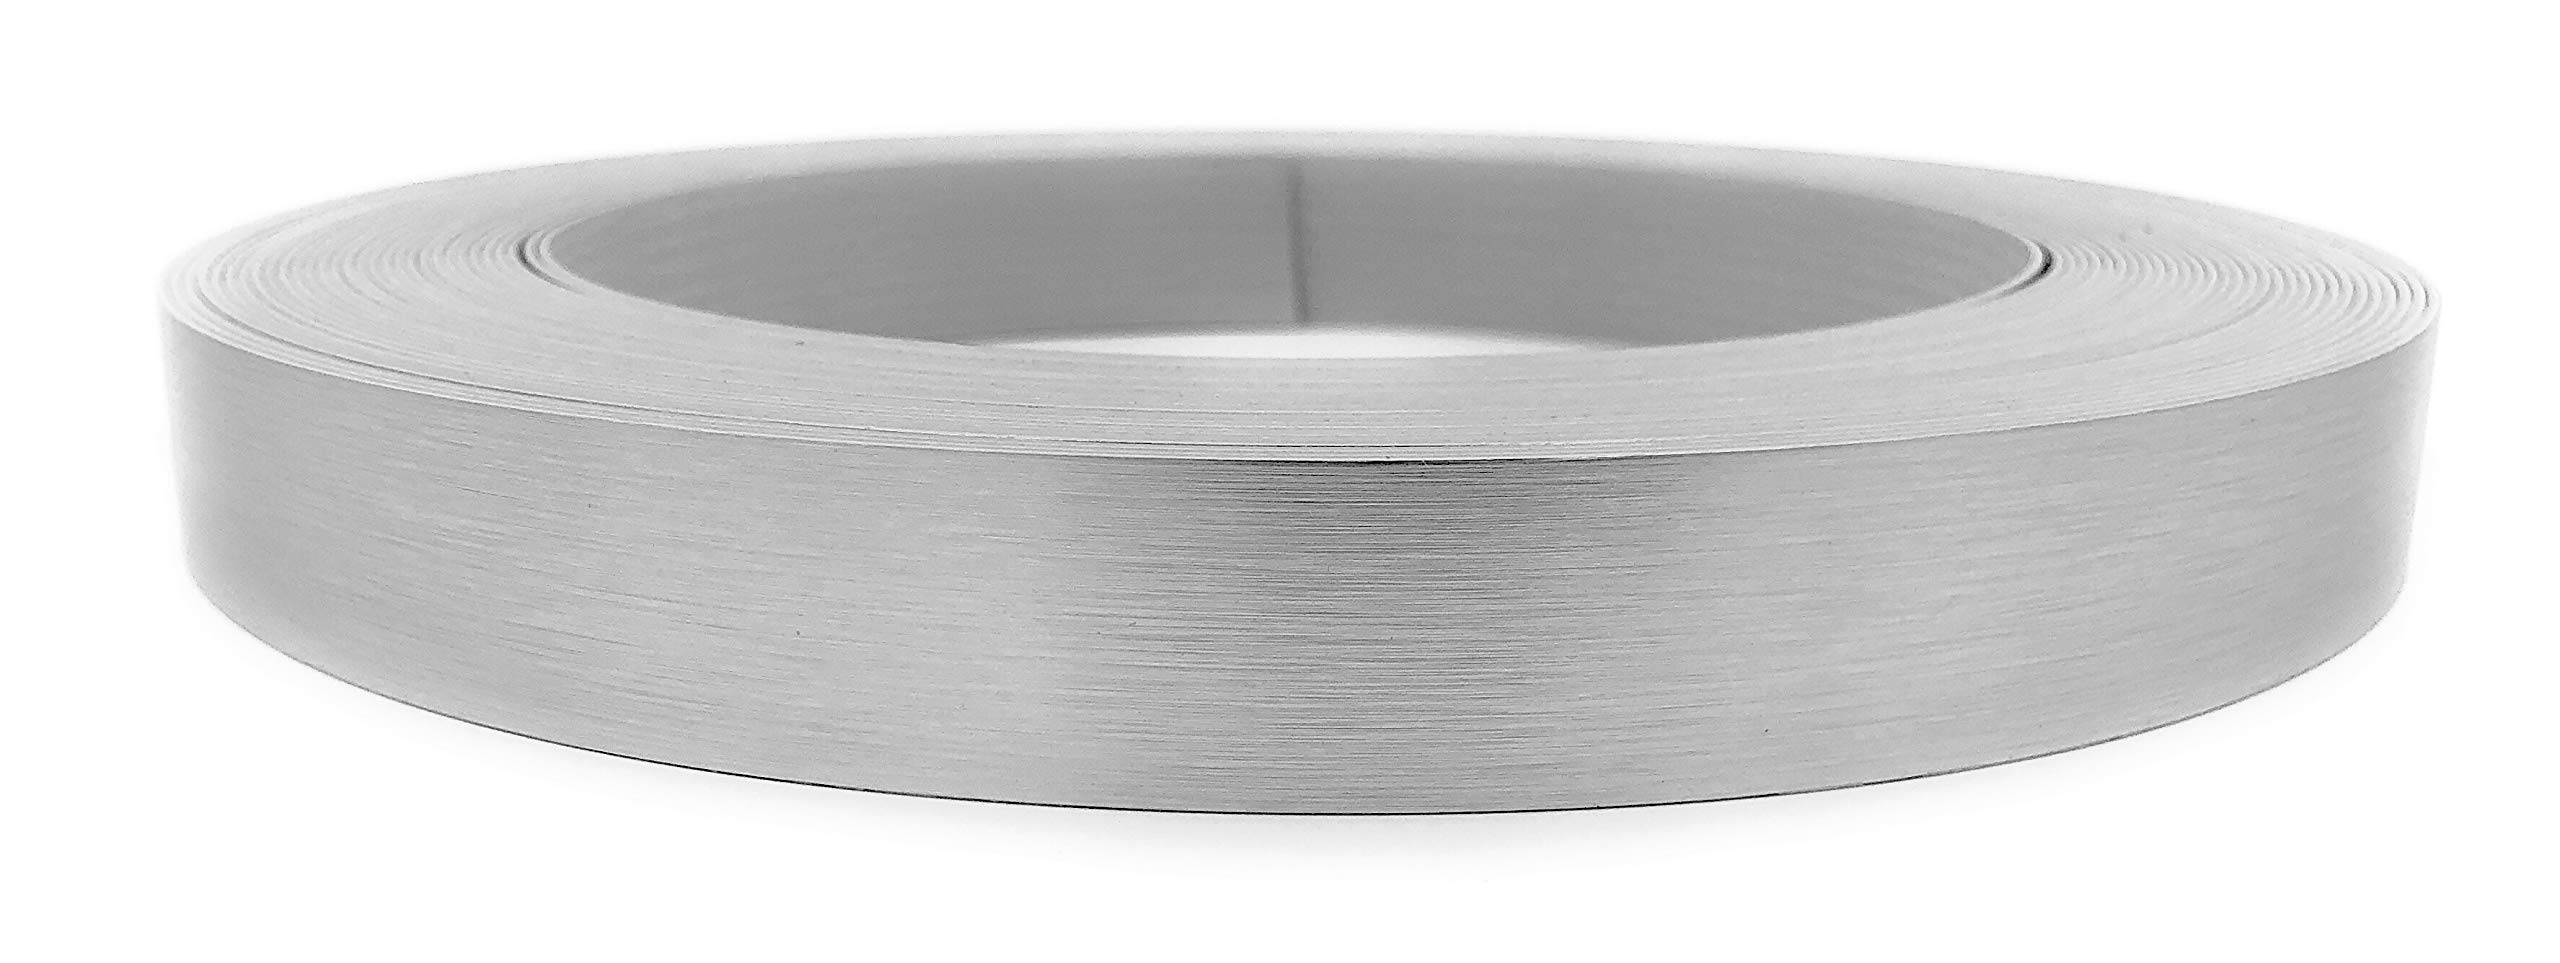 Brushed Aluminum Stainless Steel 7/8'' X 50' X 1mm Thickness Edgebanding Automatic Roll - Non Glued - Made in USA.